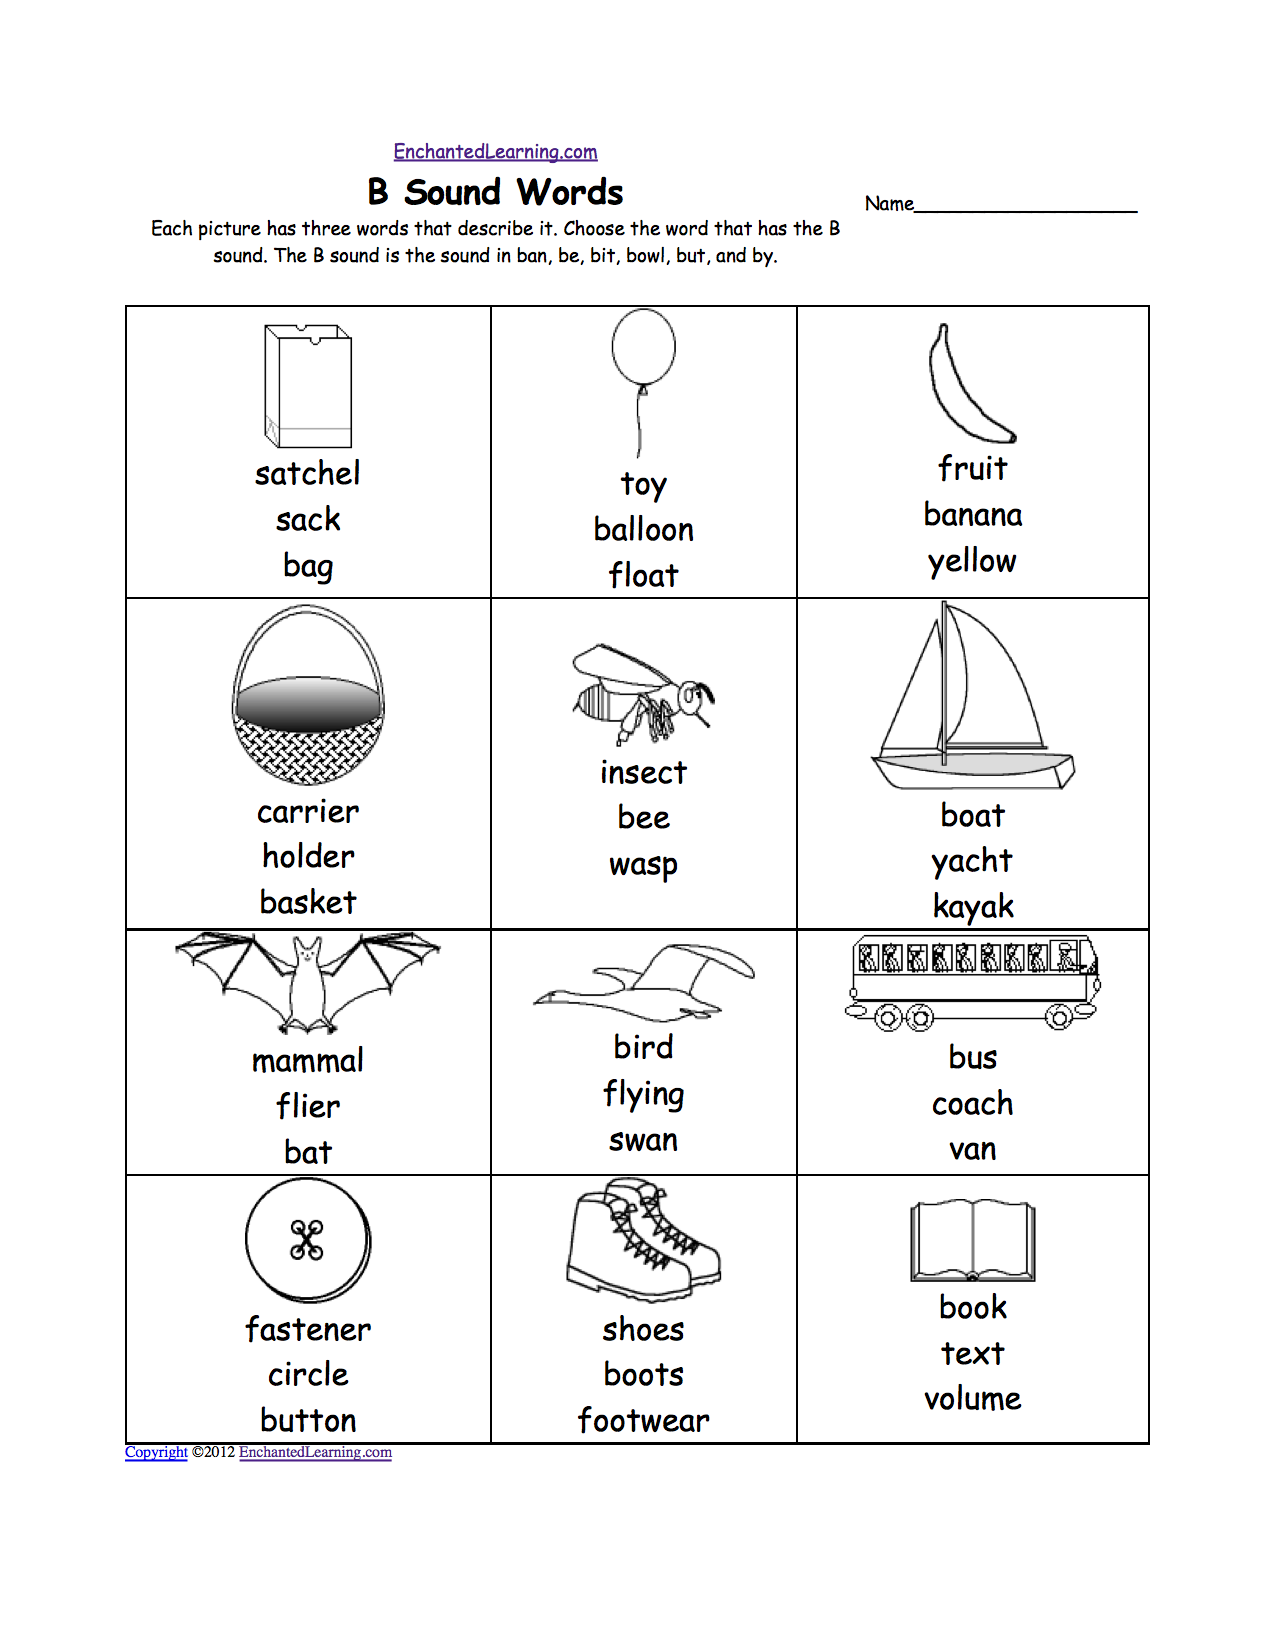 Aldiablosus  Remarkable Phonics Worksheets Multiple Choice Worksheets To Print  With Exquisite Quotbquot Sound Phonics Worksheet Multiple Choice Each Picture Has Three Words That Describe It Choose The Word That Has A Quotbquot Sound The Quotbquot Sound Is The Sound  With Amazing Number Pattern Worksheets Rd Grade Also Ed And Ing Endings Worksheets In Addition Create A Multiplication Worksheet And Esl Spanish To English Worksheets As Well As Th Grade Noun Worksheets Additionally Evidence Of Chemical Change Worksheet From Enchantedlearningcom With Aldiablosus  Exquisite Phonics Worksheets Multiple Choice Worksheets To Print  With Amazing Quotbquot Sound Phonics Worksheet Multiple Choice Each Picture Has Three Words That Describe It Choose The Word That Has A Quotbquot Sound The Quotbquot Sound Is The Sound  And Remarkable Number Pattern Worksheets Rd Grade Also Ed And Ing Endings Worksheets In Addition Create A Multiplication Worksheet From Enchantedlearningcom